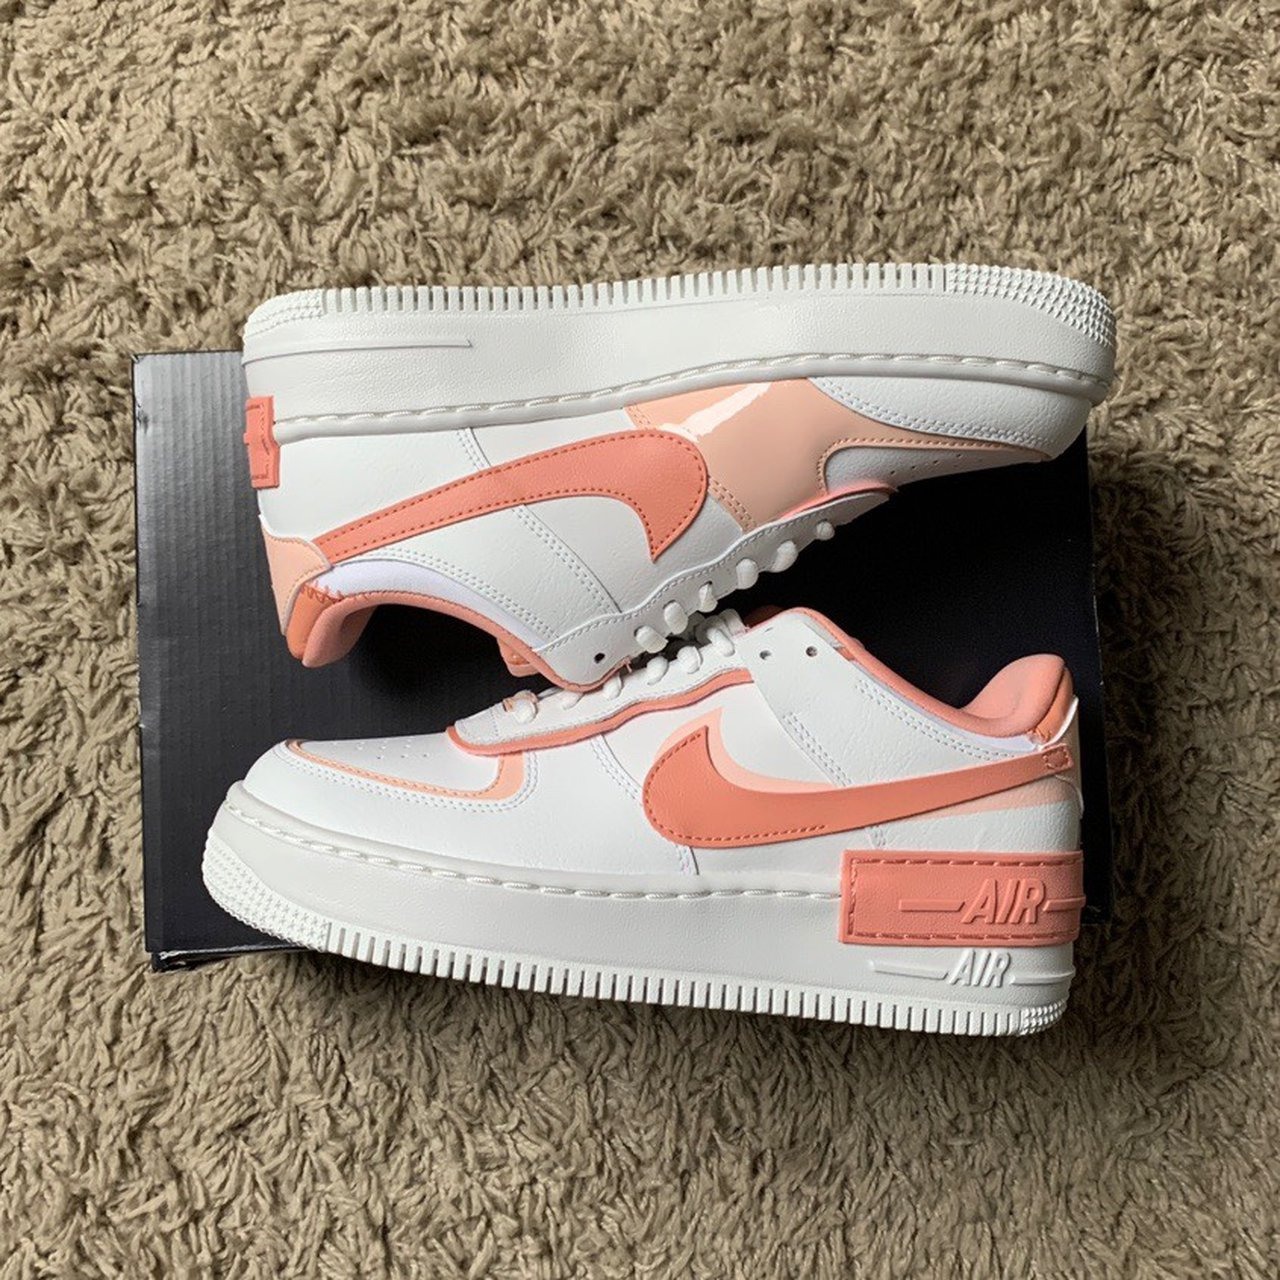 Nike Air Force 1 Shadow Summit White Pink Quartz Depop Crafted with double the swoosh and twice the overlays across the eyestays. nike air force 1 shadow summit white